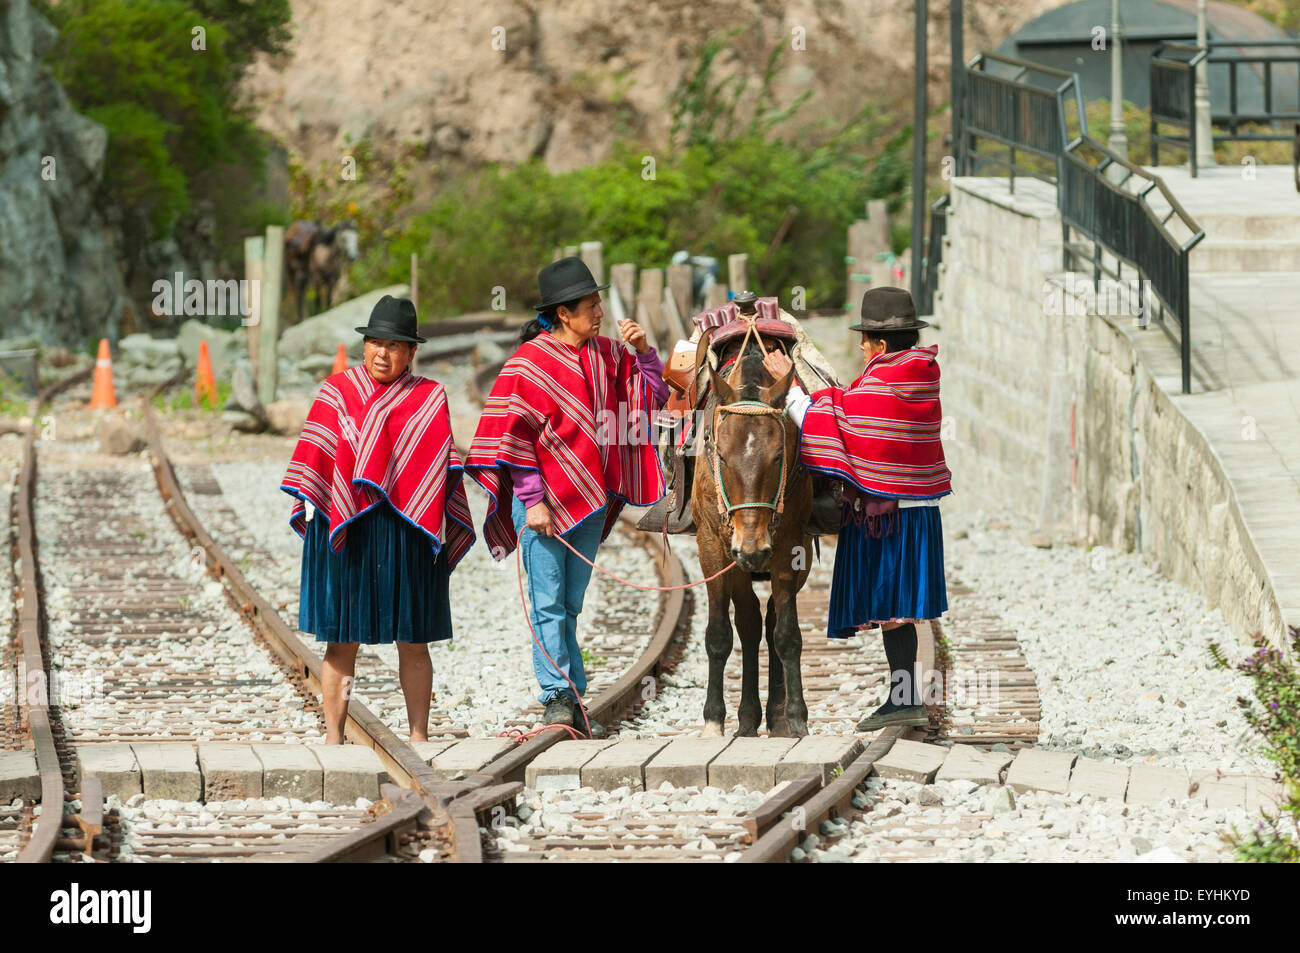 Pony-Express am Sibambe Station, in der Nähe von Riobamba in Ecuador Stockbild